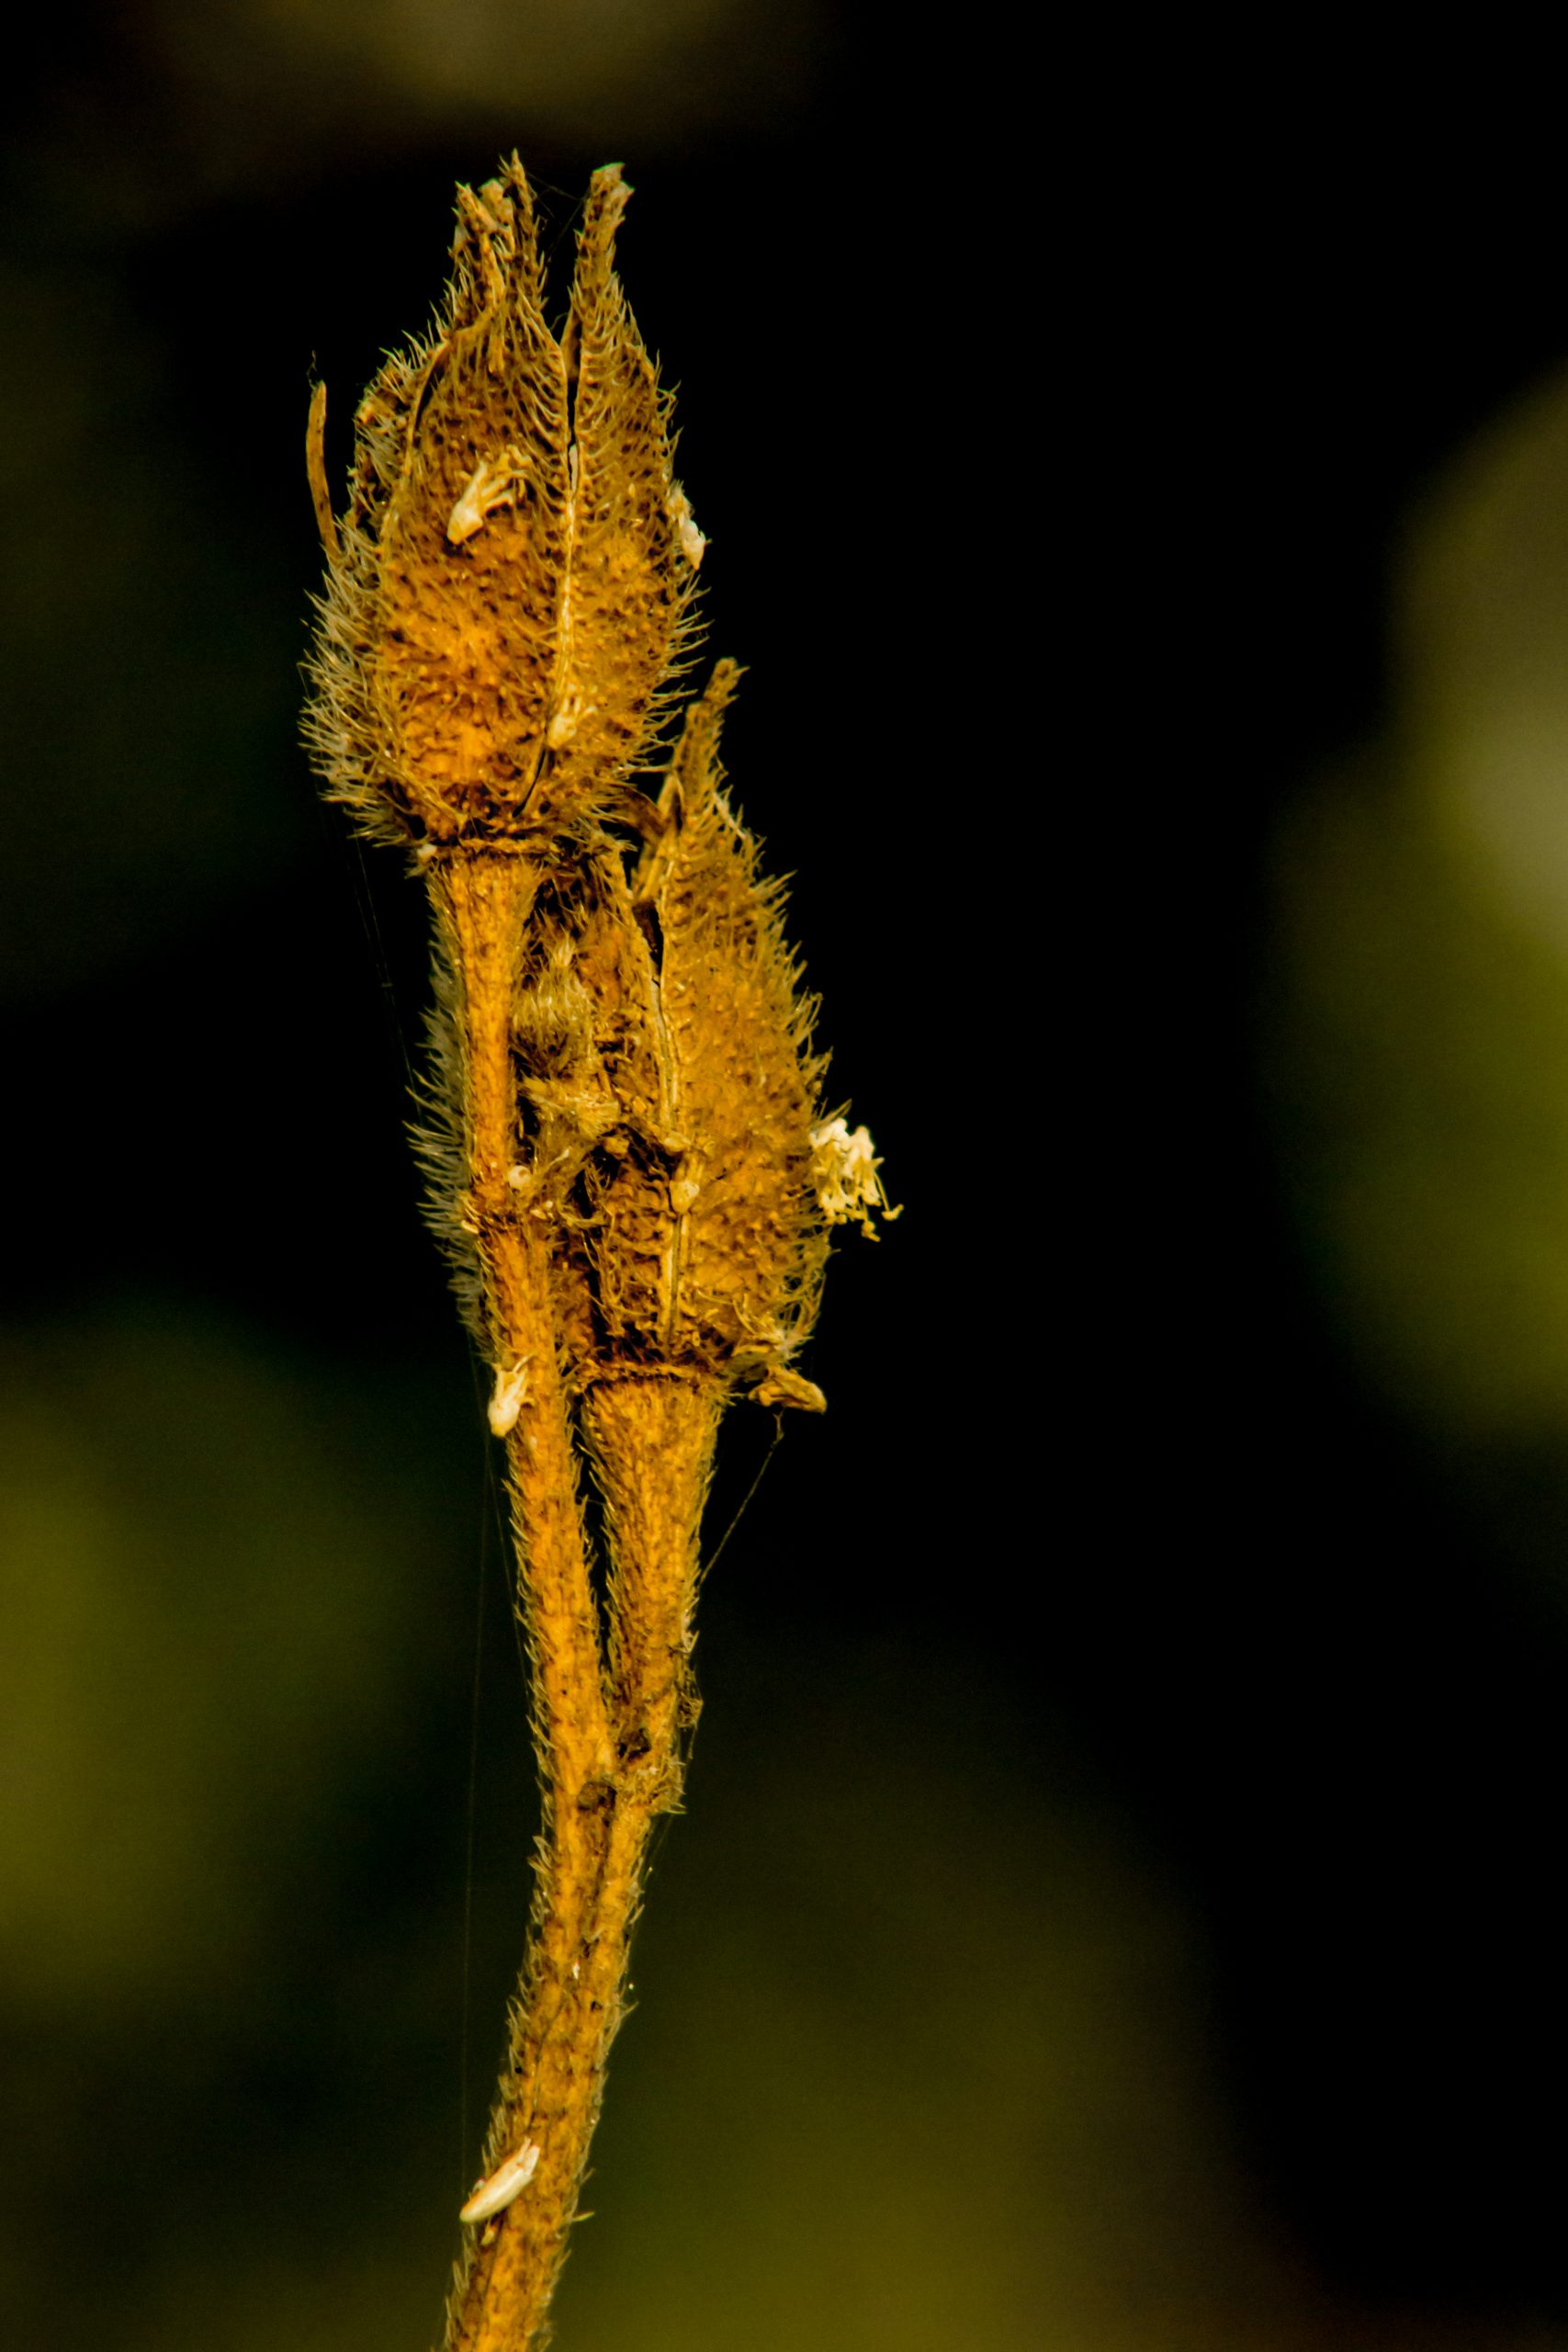 Dry buds of a plant